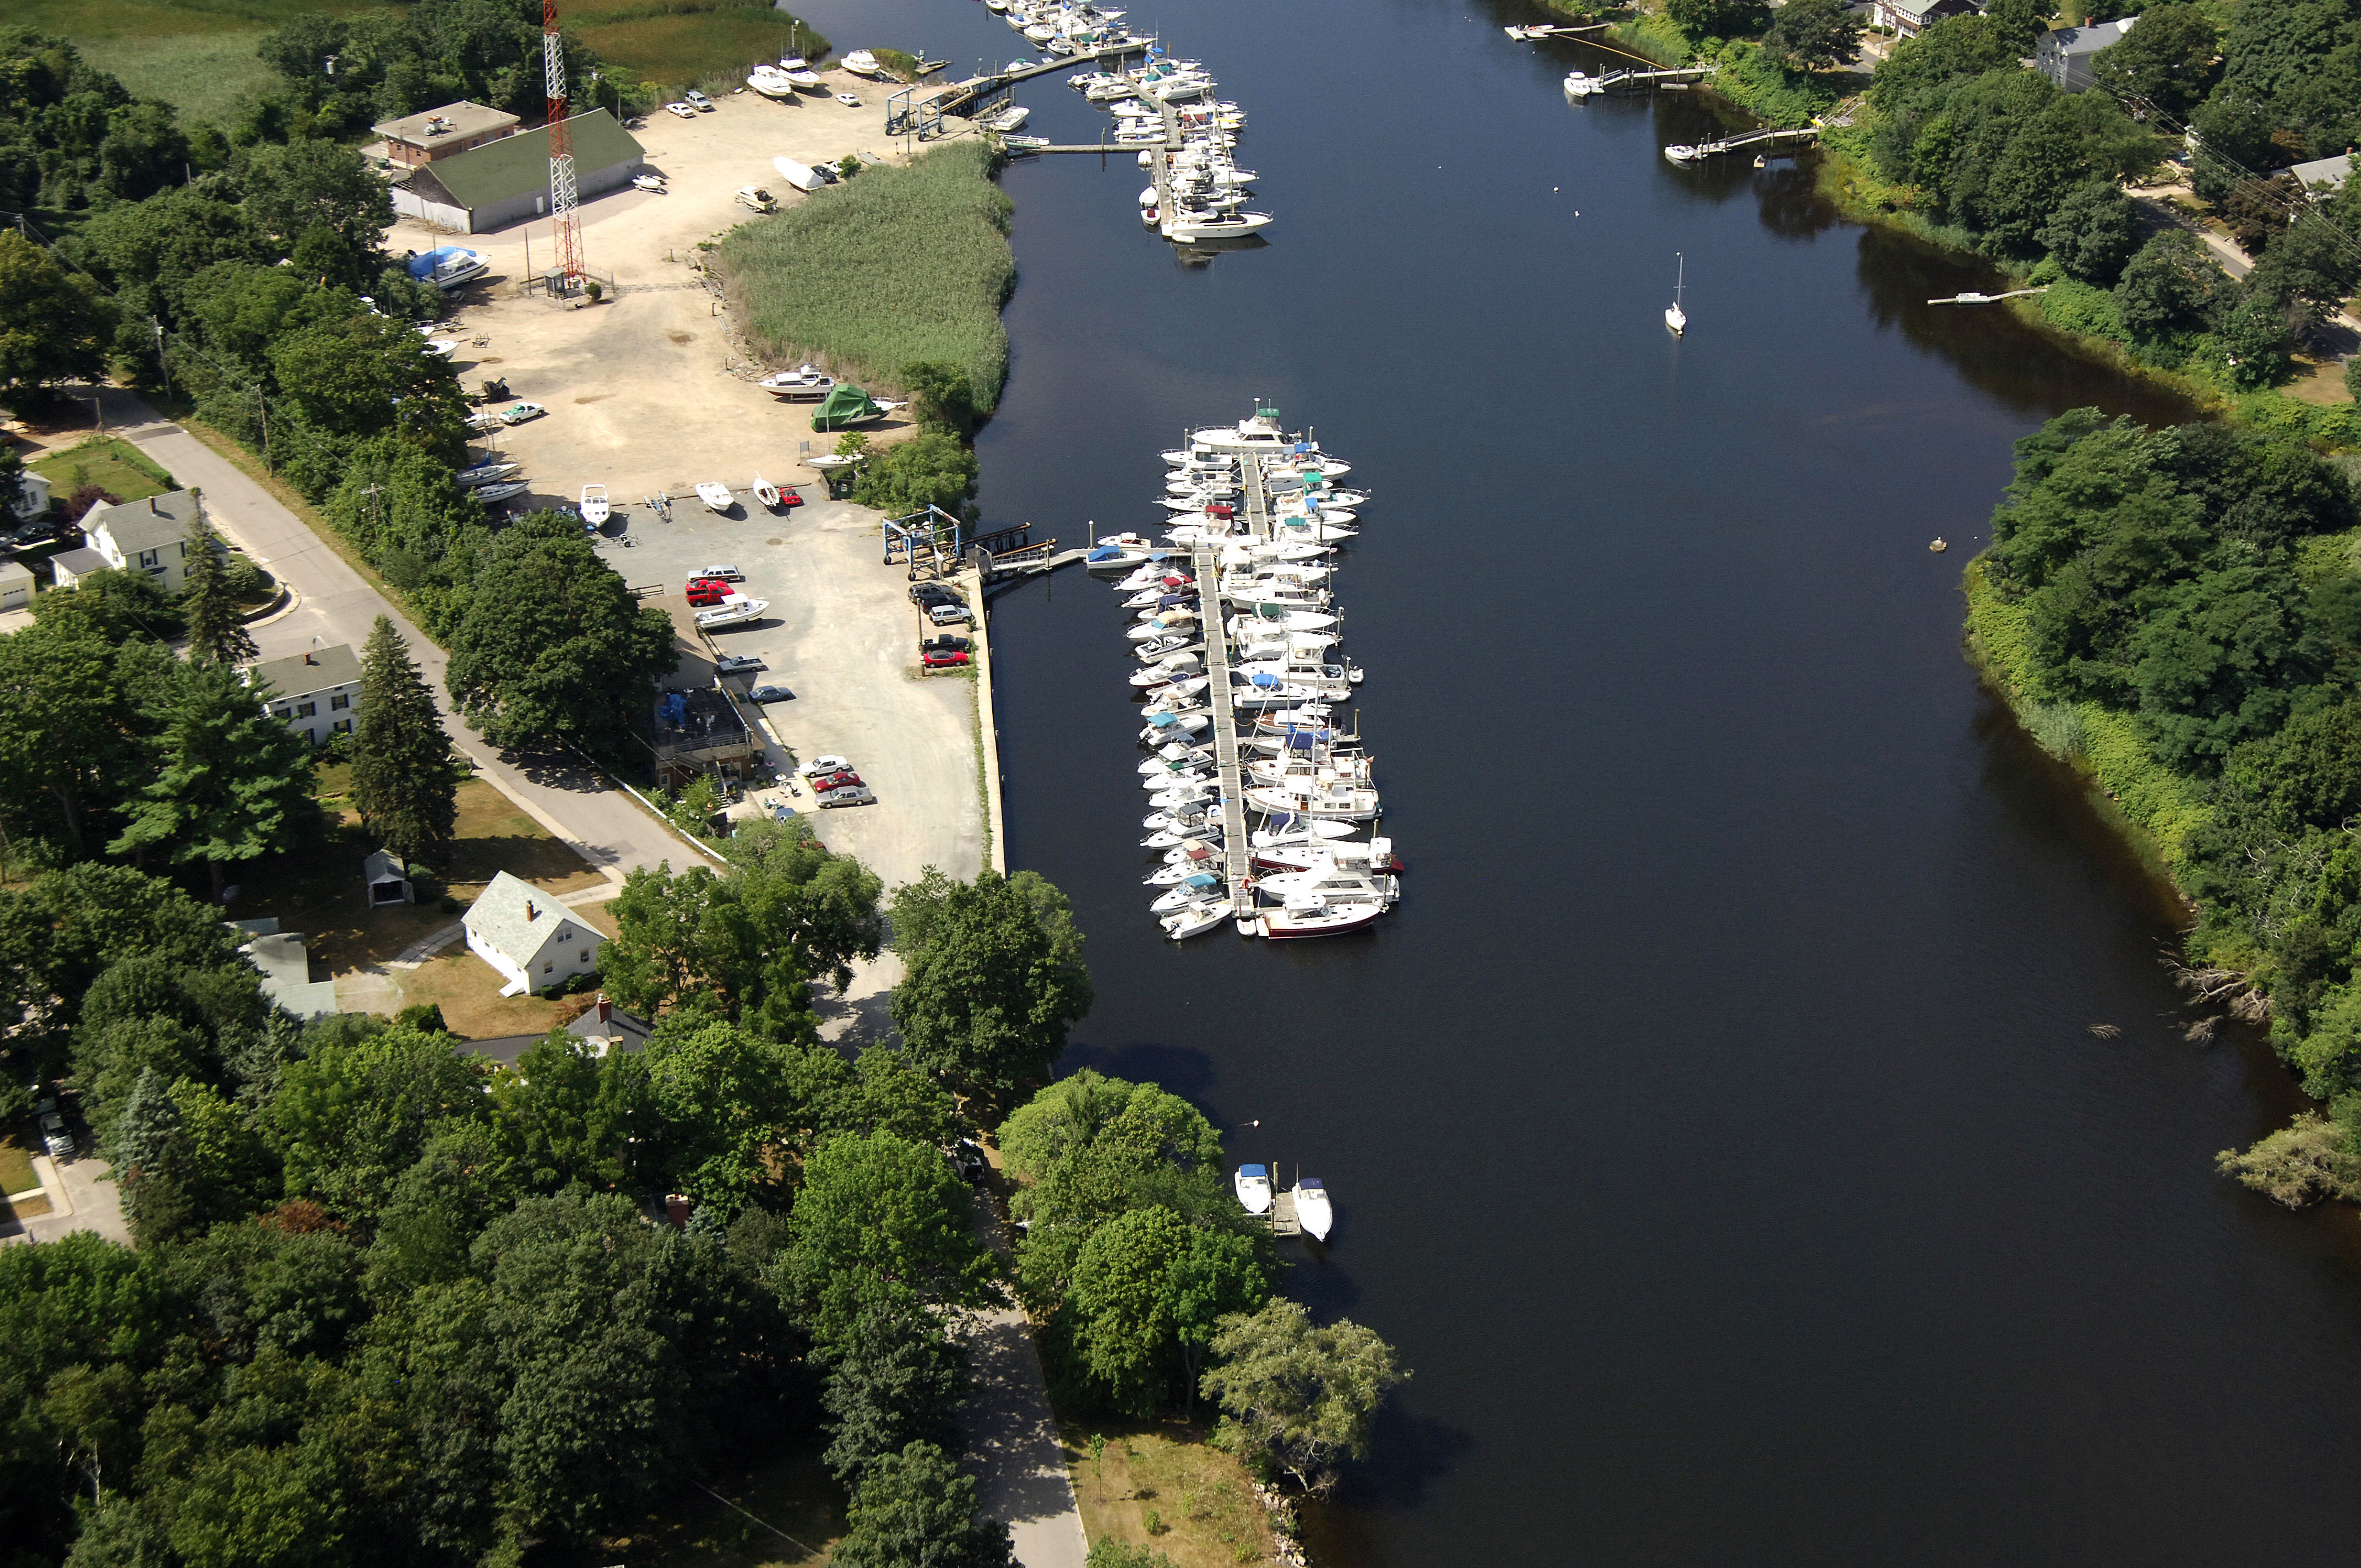 Viking marina in westerly ri united states marina reviews viking marina in westerly ri united states marina reviews phone number marinas nvjuhfo Image collections